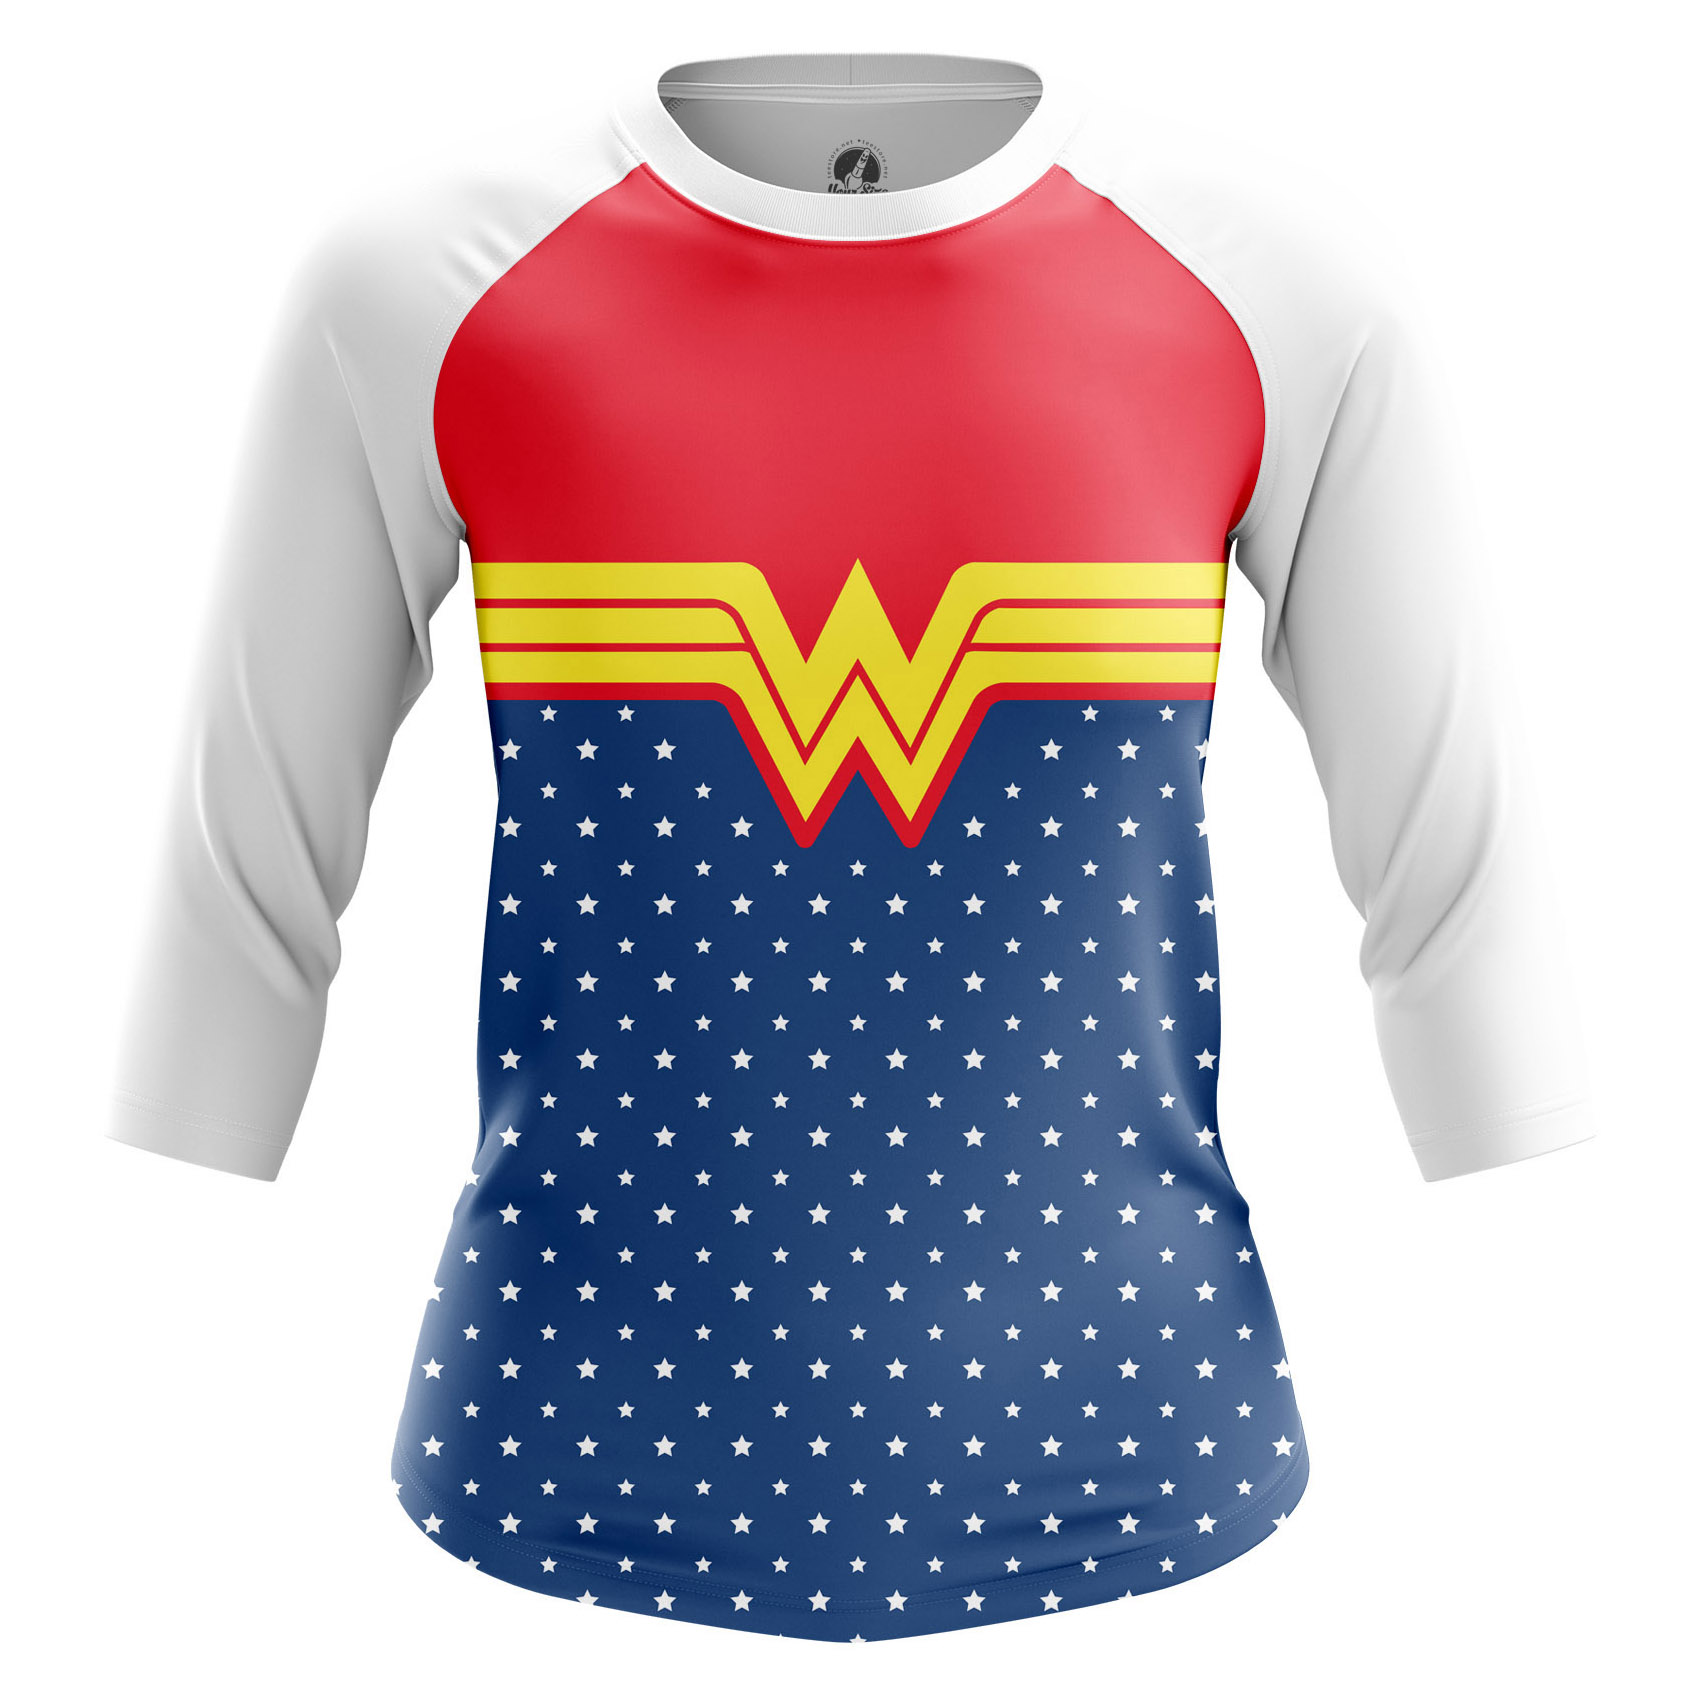 W-Rag-Wonderwomansuit_1482275470_672